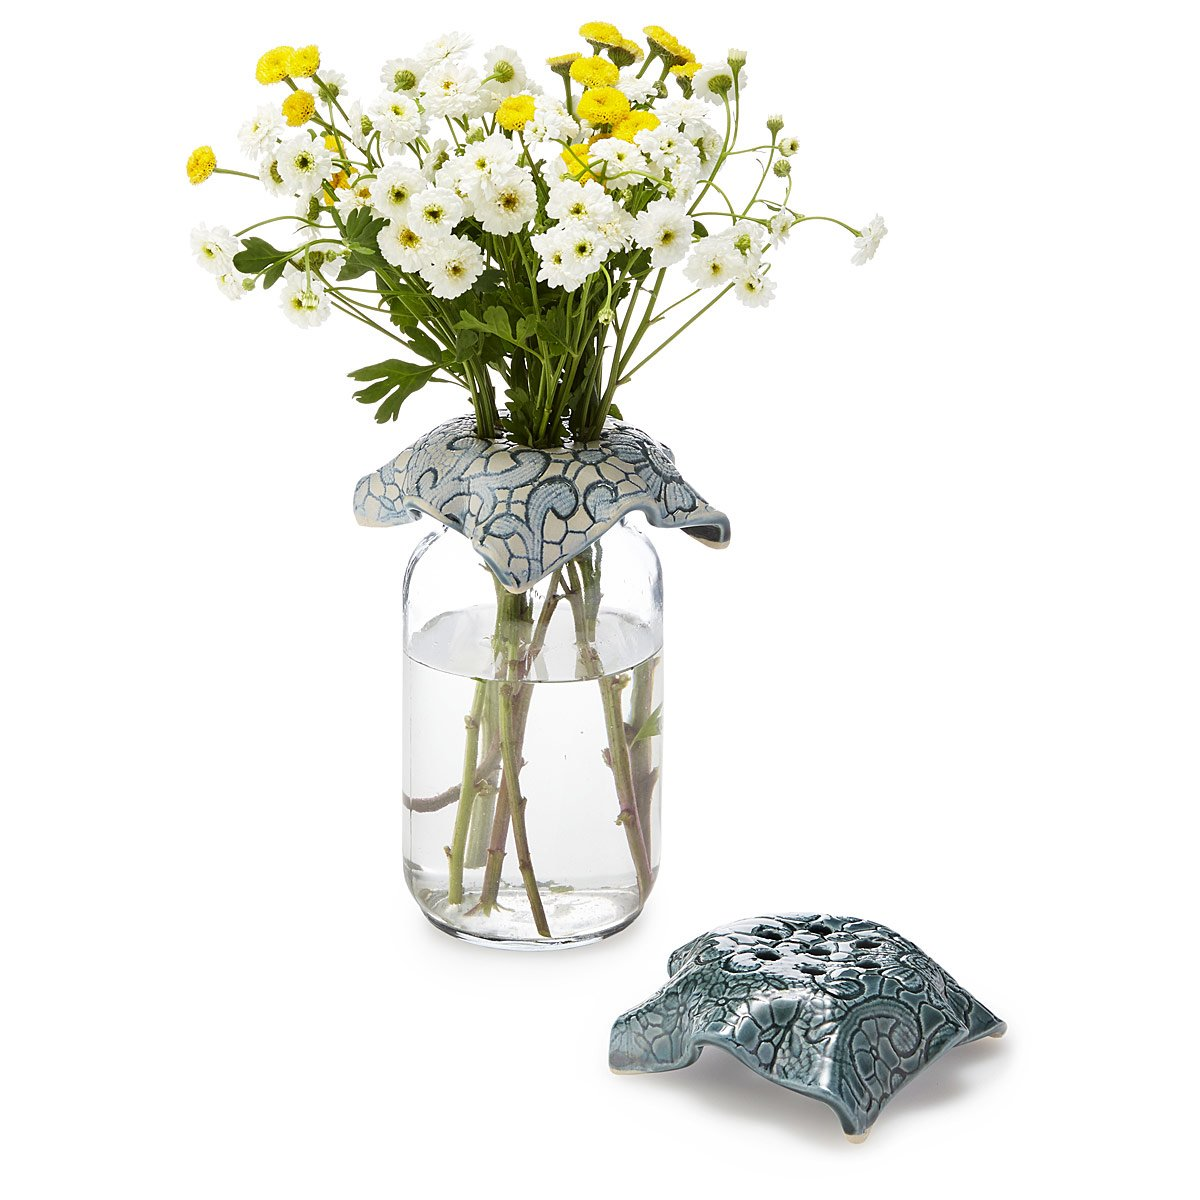 vase flowers design faux with ideas vases and decorative decor flower tips home